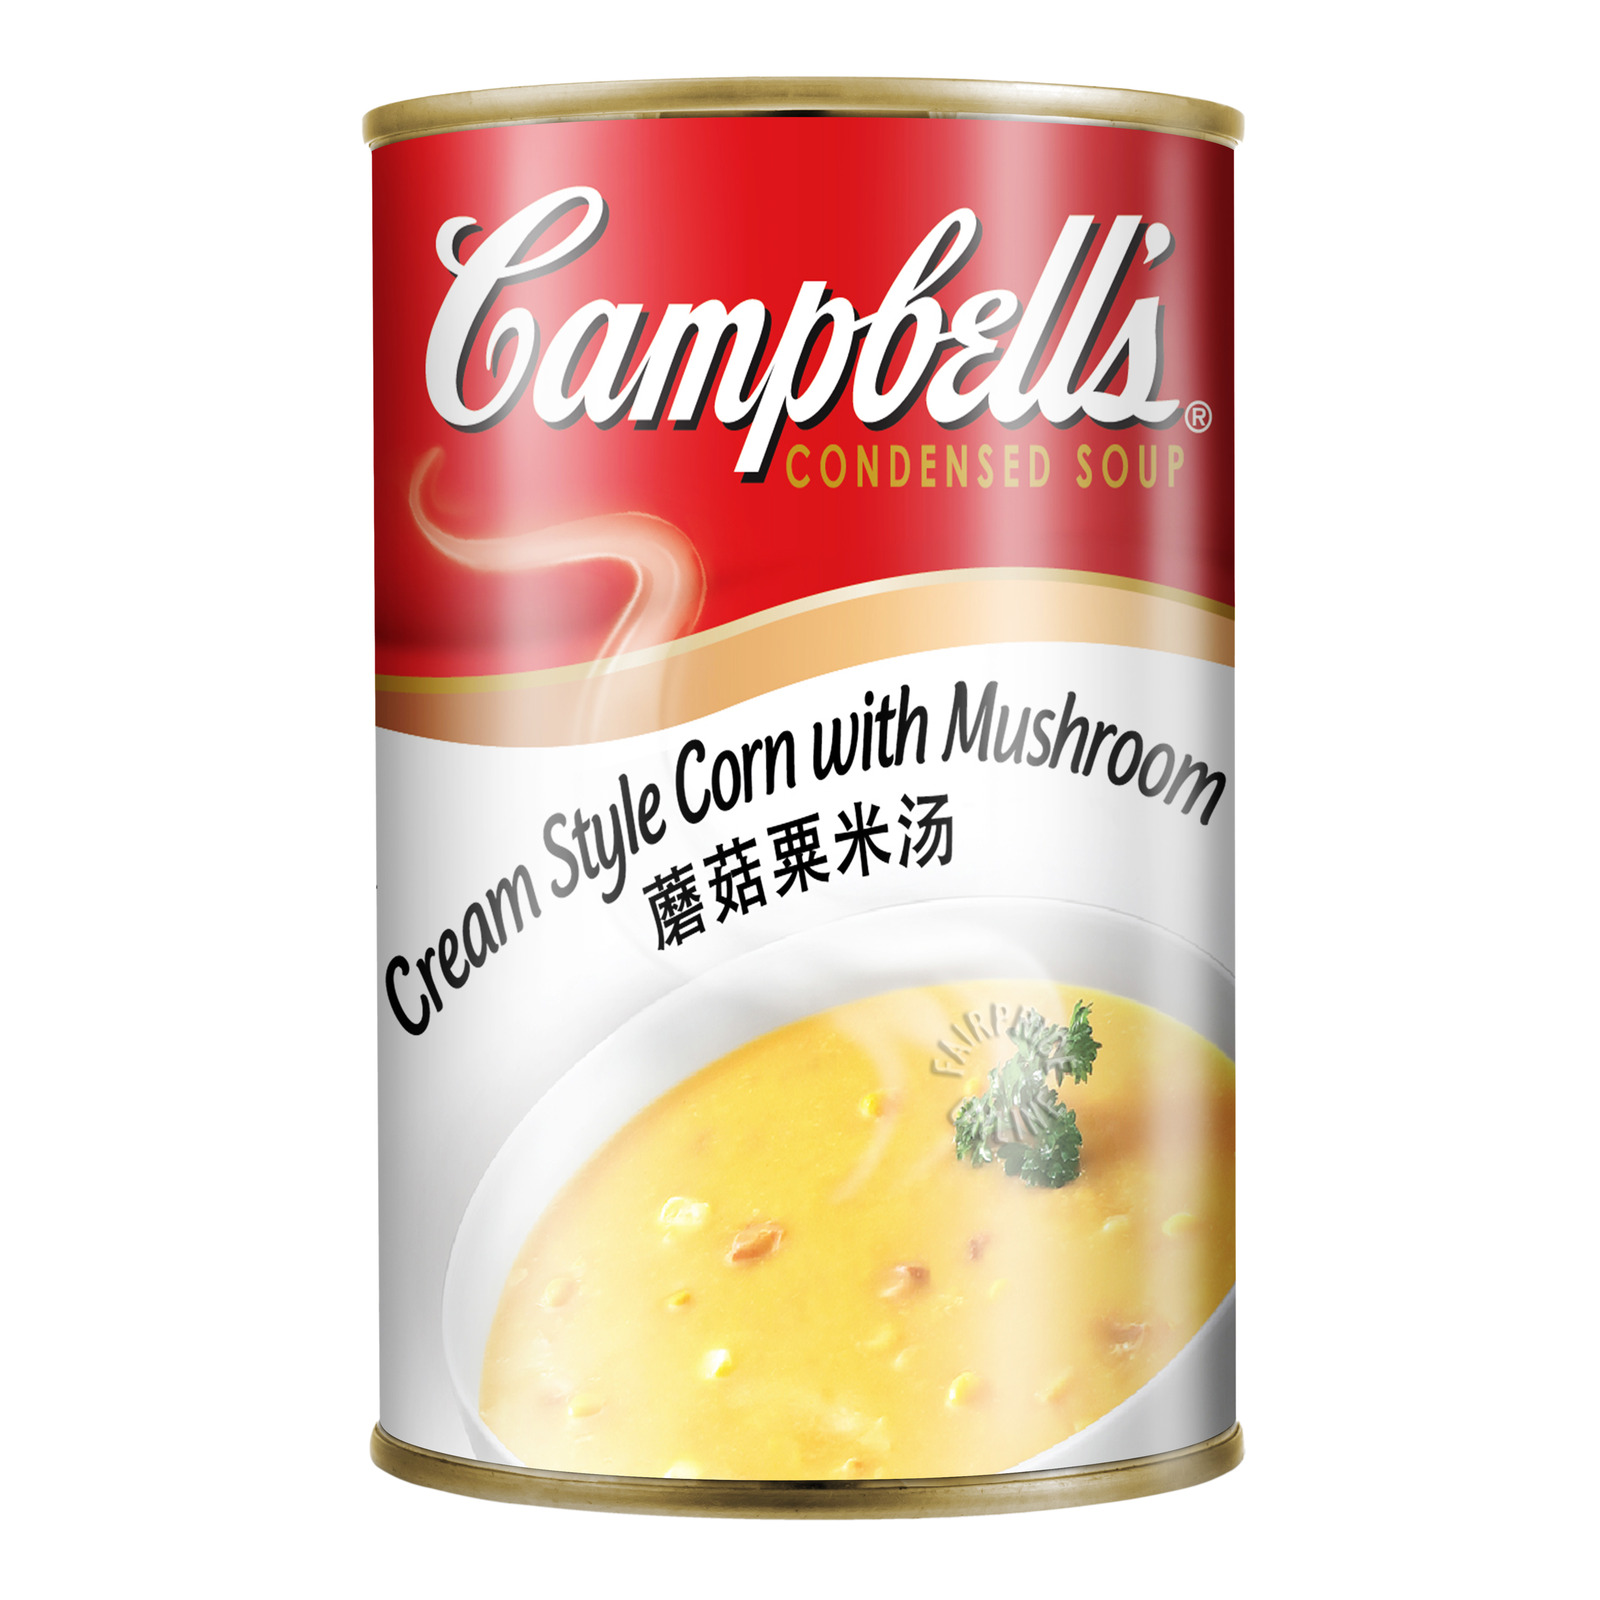 Campbell's Condensed Soup - Cream Style Corn with Mushroom